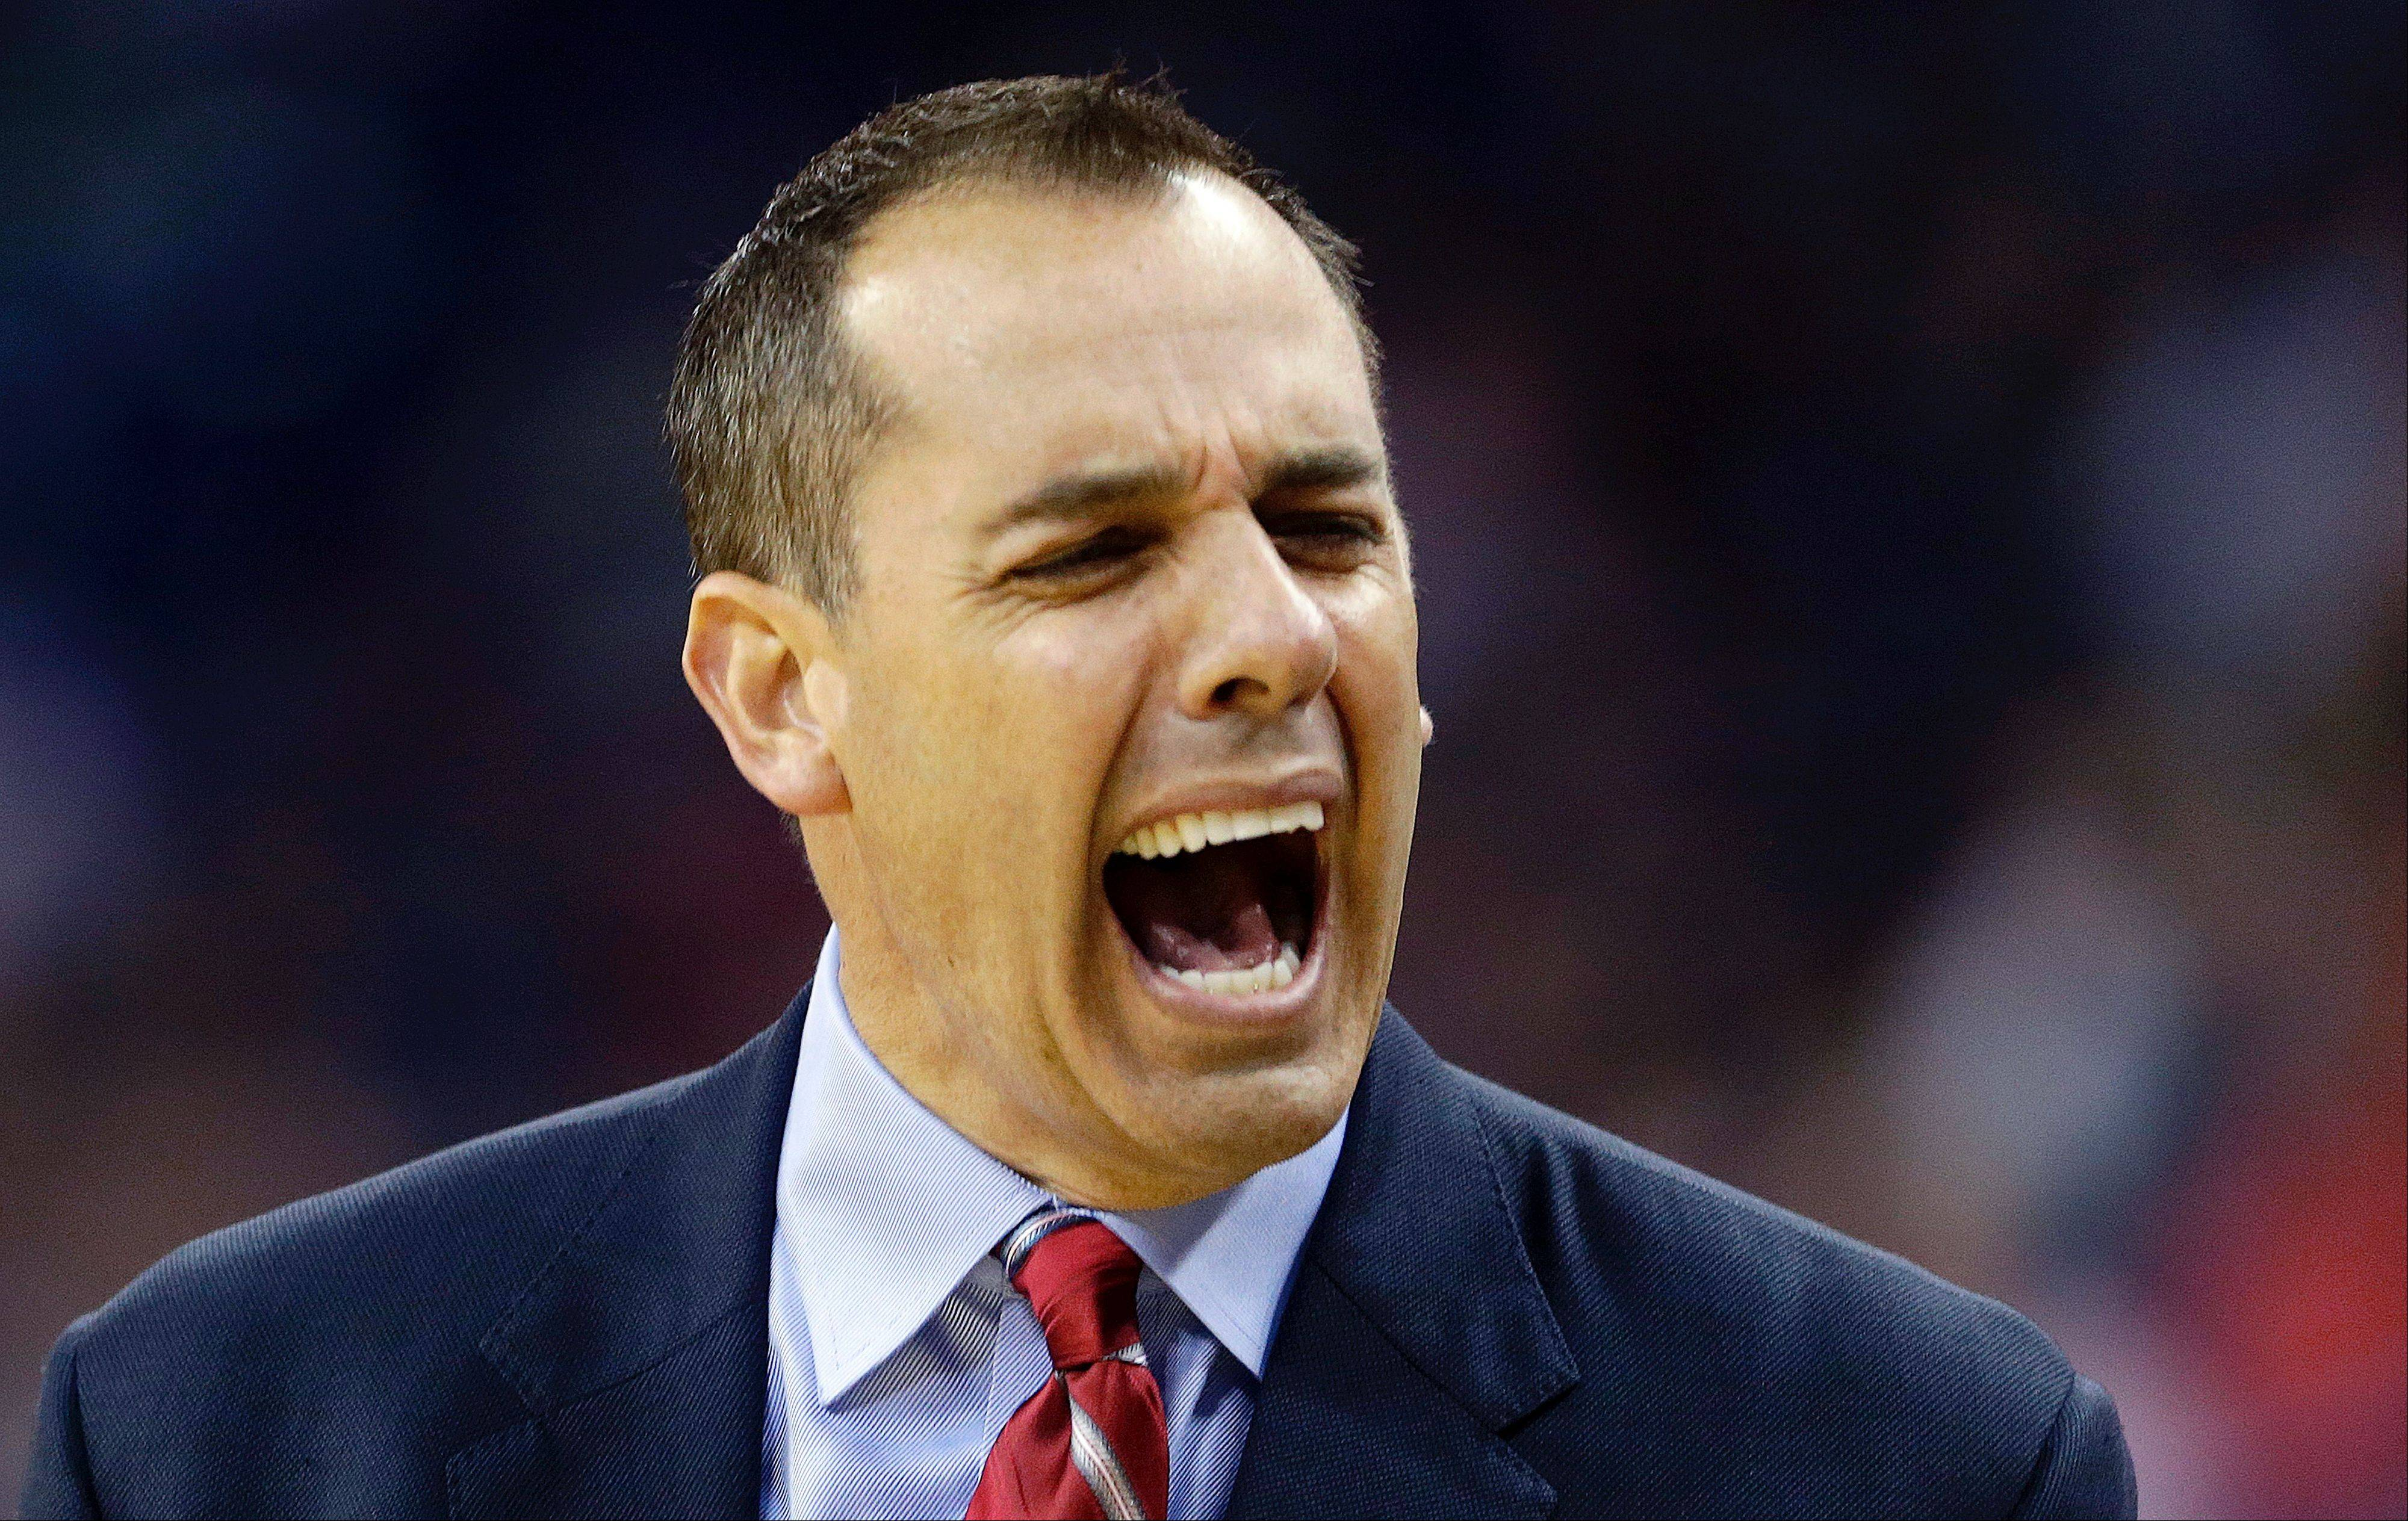 Since taking over the Pacers in early 2011, coach Frank Vogel has helped Indiana to a 122-74 record, pendings Tuesday night's game. The Pacers and the Bulls meet Wednesday in Indianapolis.